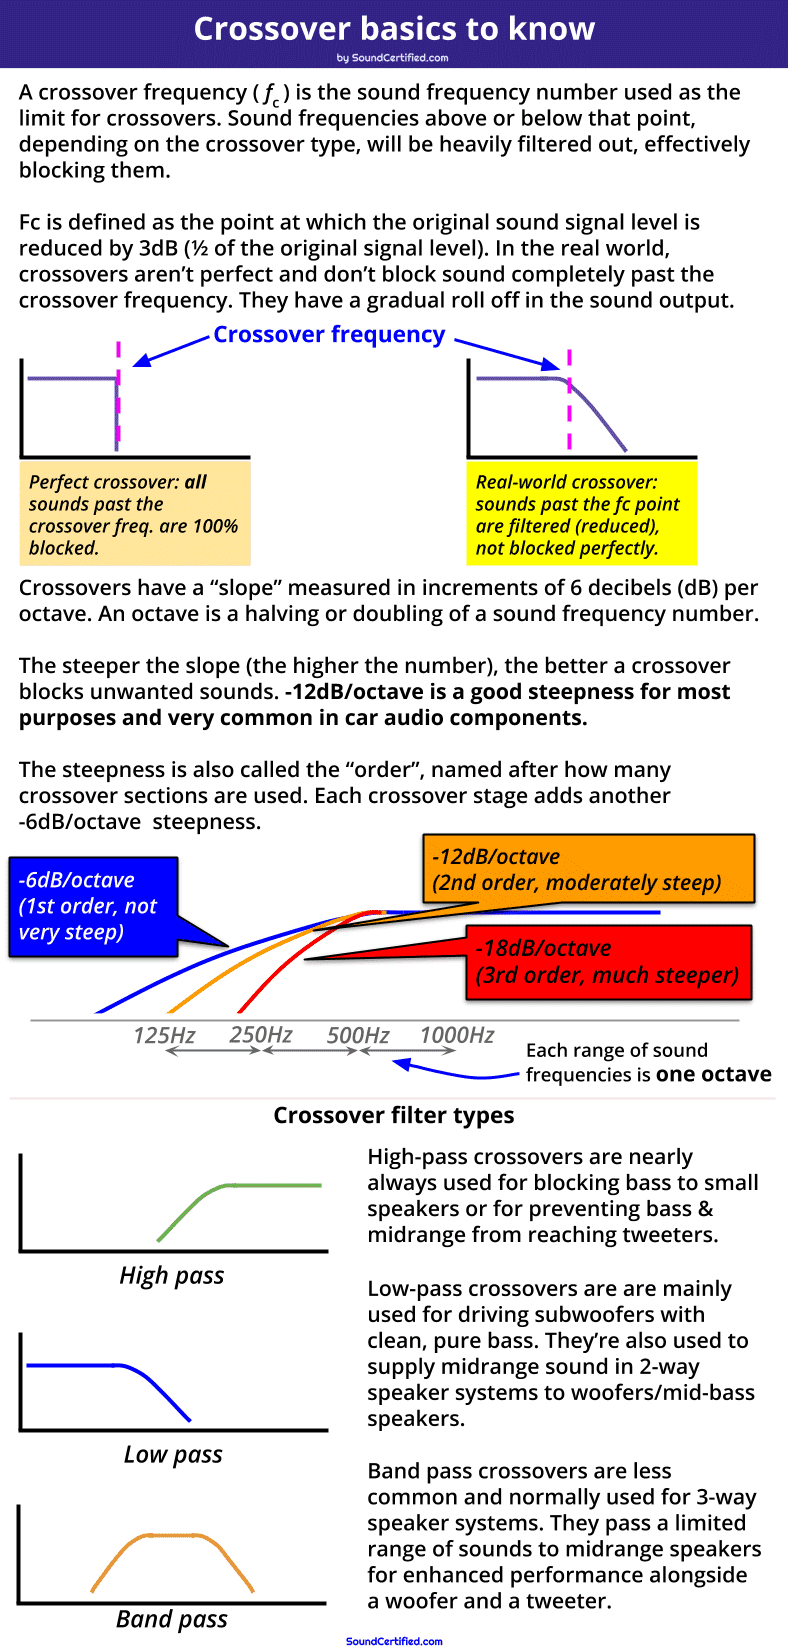 Crossovers and crossover frequencies explained diagram